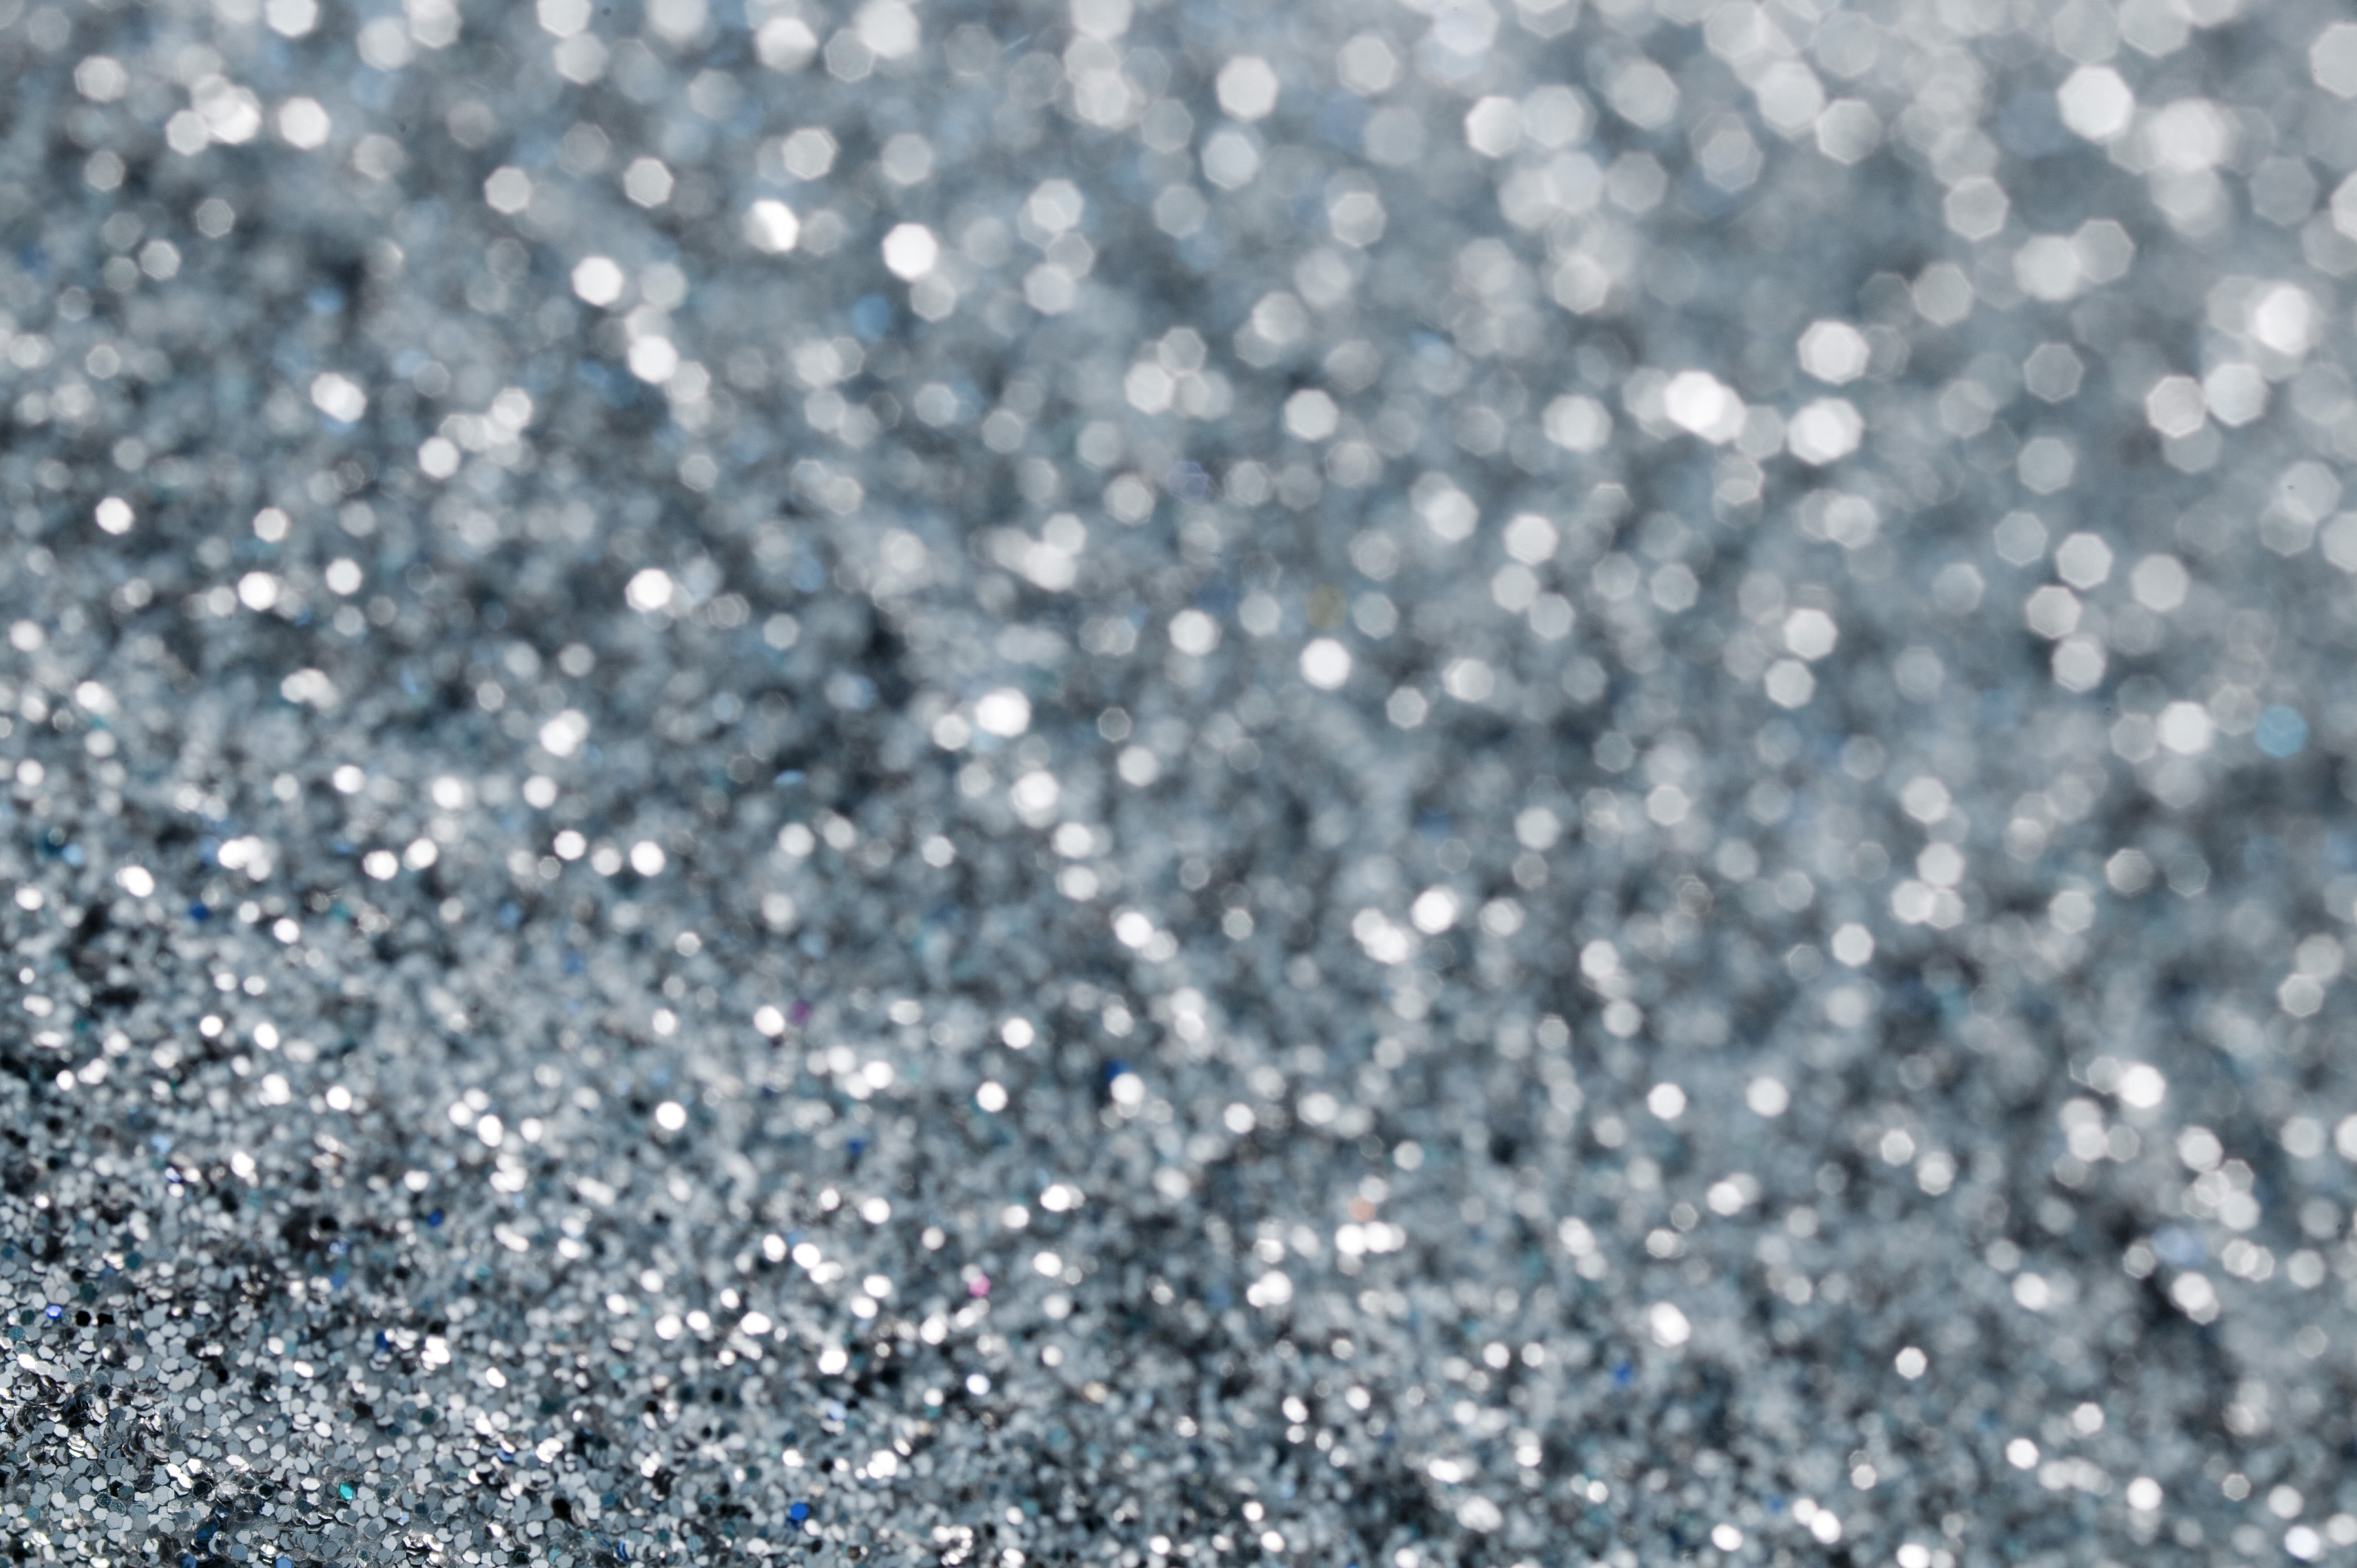 Grey gravel background with light sparkles slightly out of focus near top right corner